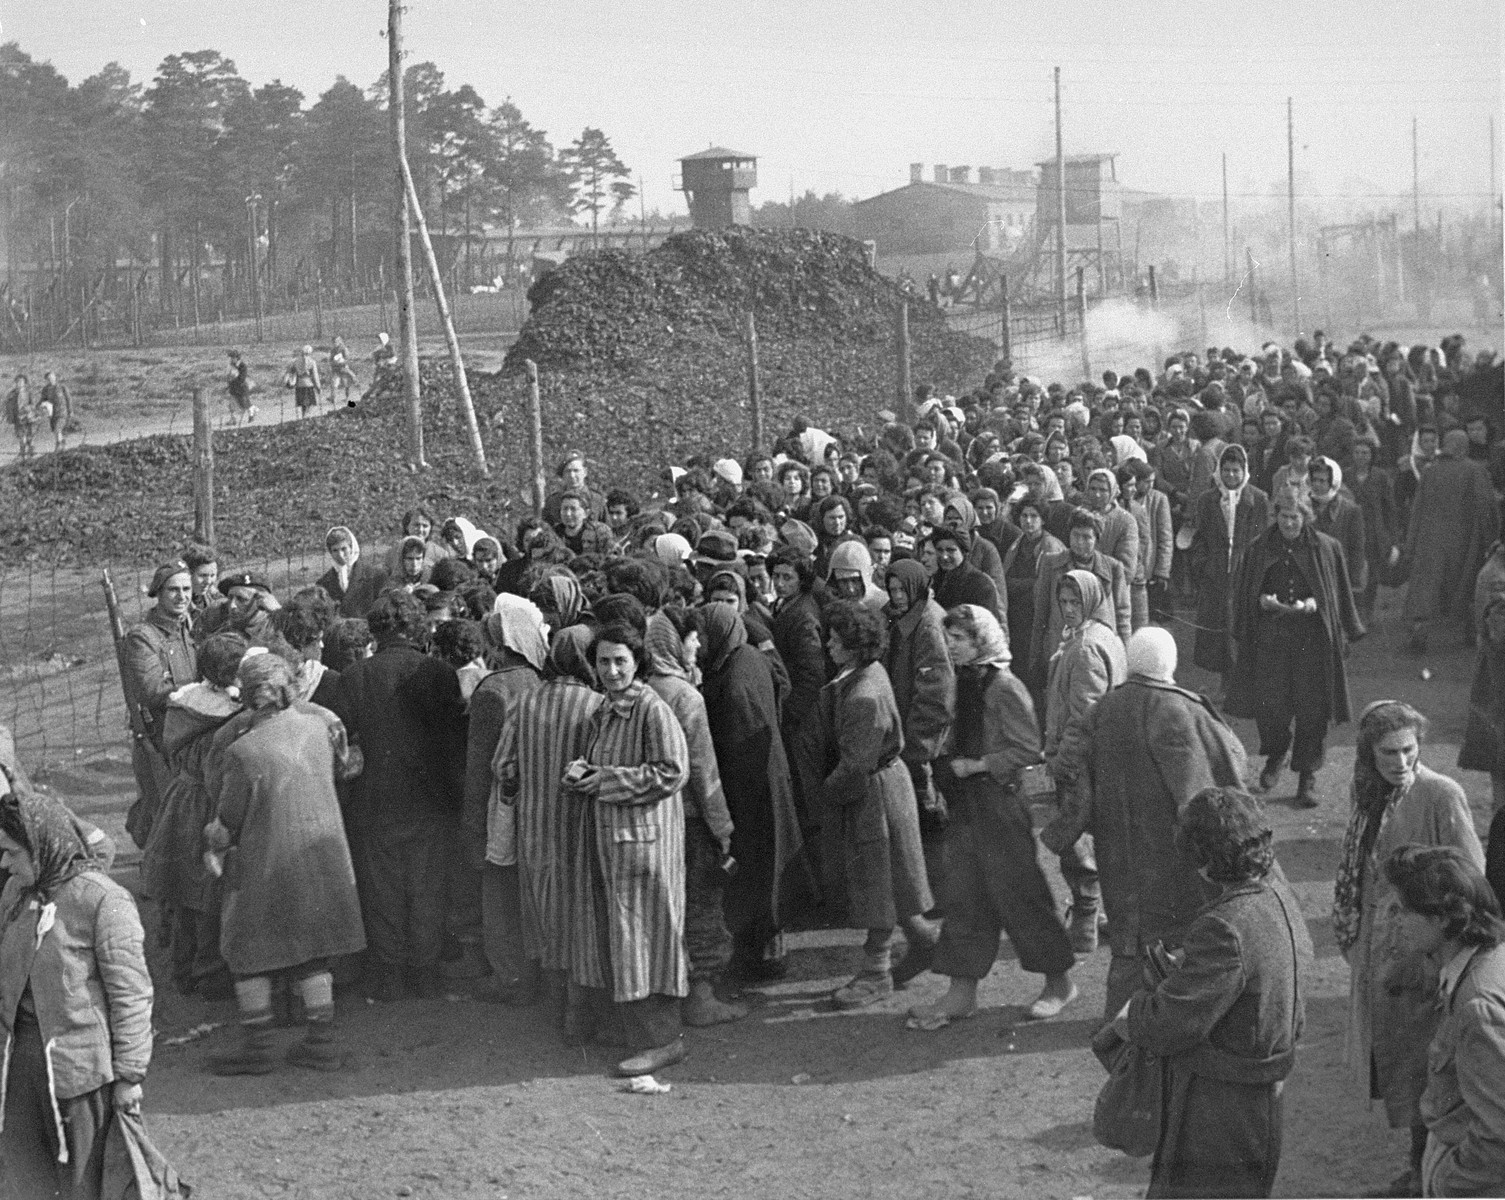 Women survivors of Bergen-Belsen crowd together on the main street of the camp to wait for food.  A pile of victims' shoes is visible in the background.